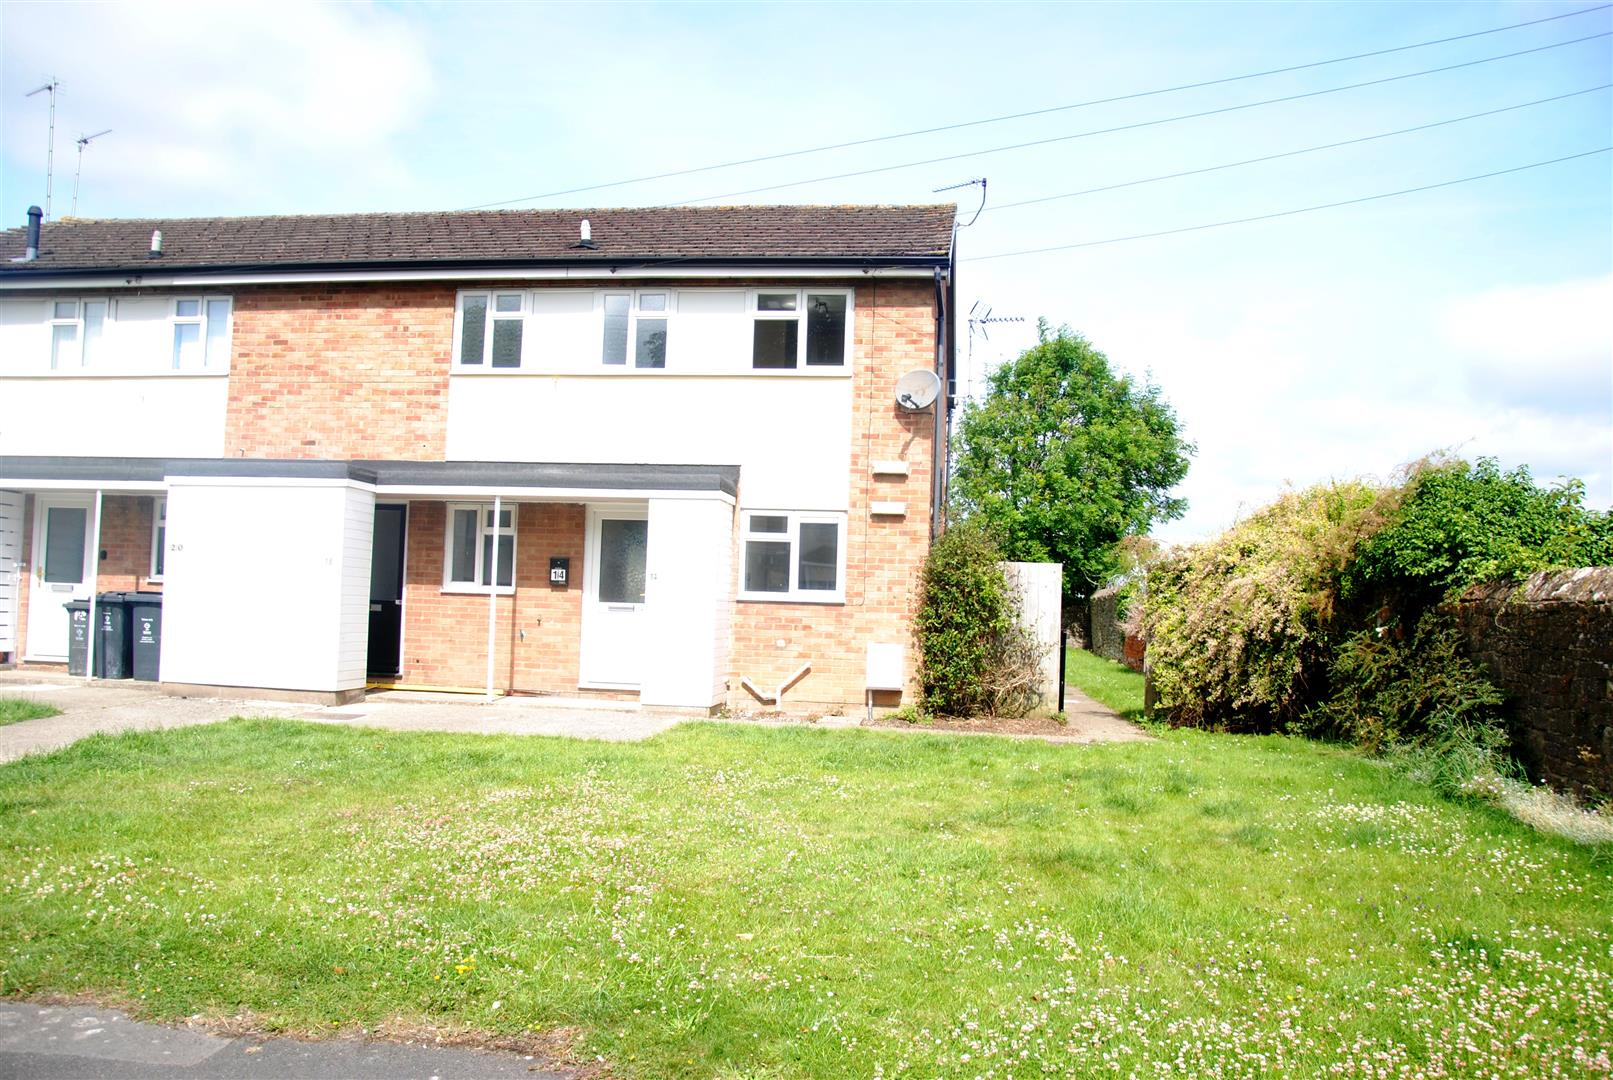 1 Bedroom Flat for sale in Swindon